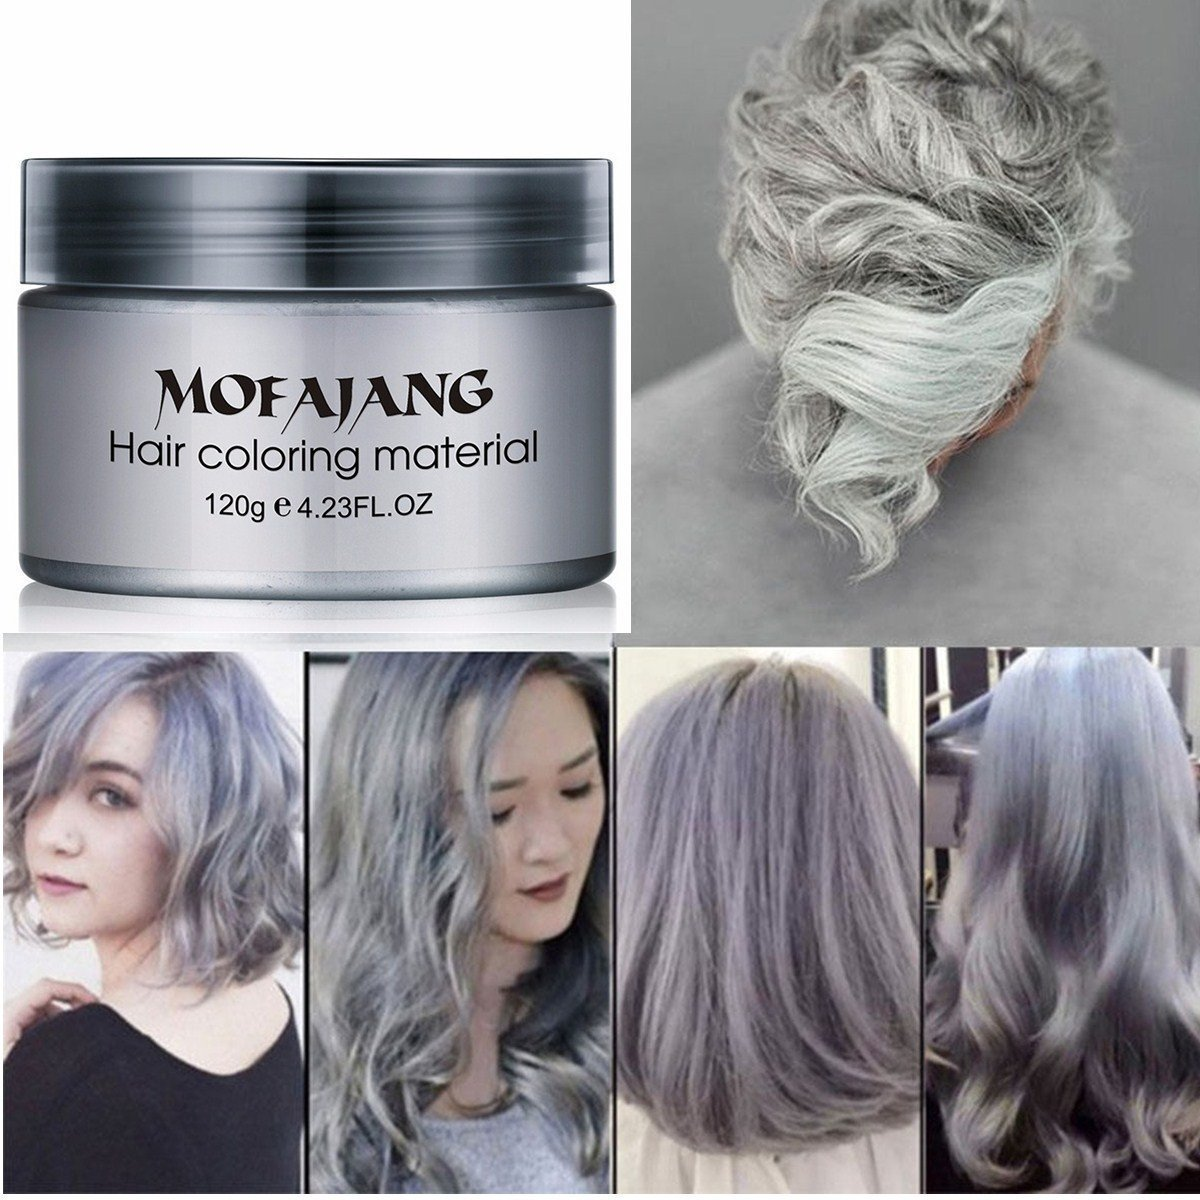 Mofajang Hair Wax Dye Styling Cream Mud, Natural Hairstyle Color Pomade, Washable Temporary, Gray by MOFAJANG (Image #2)